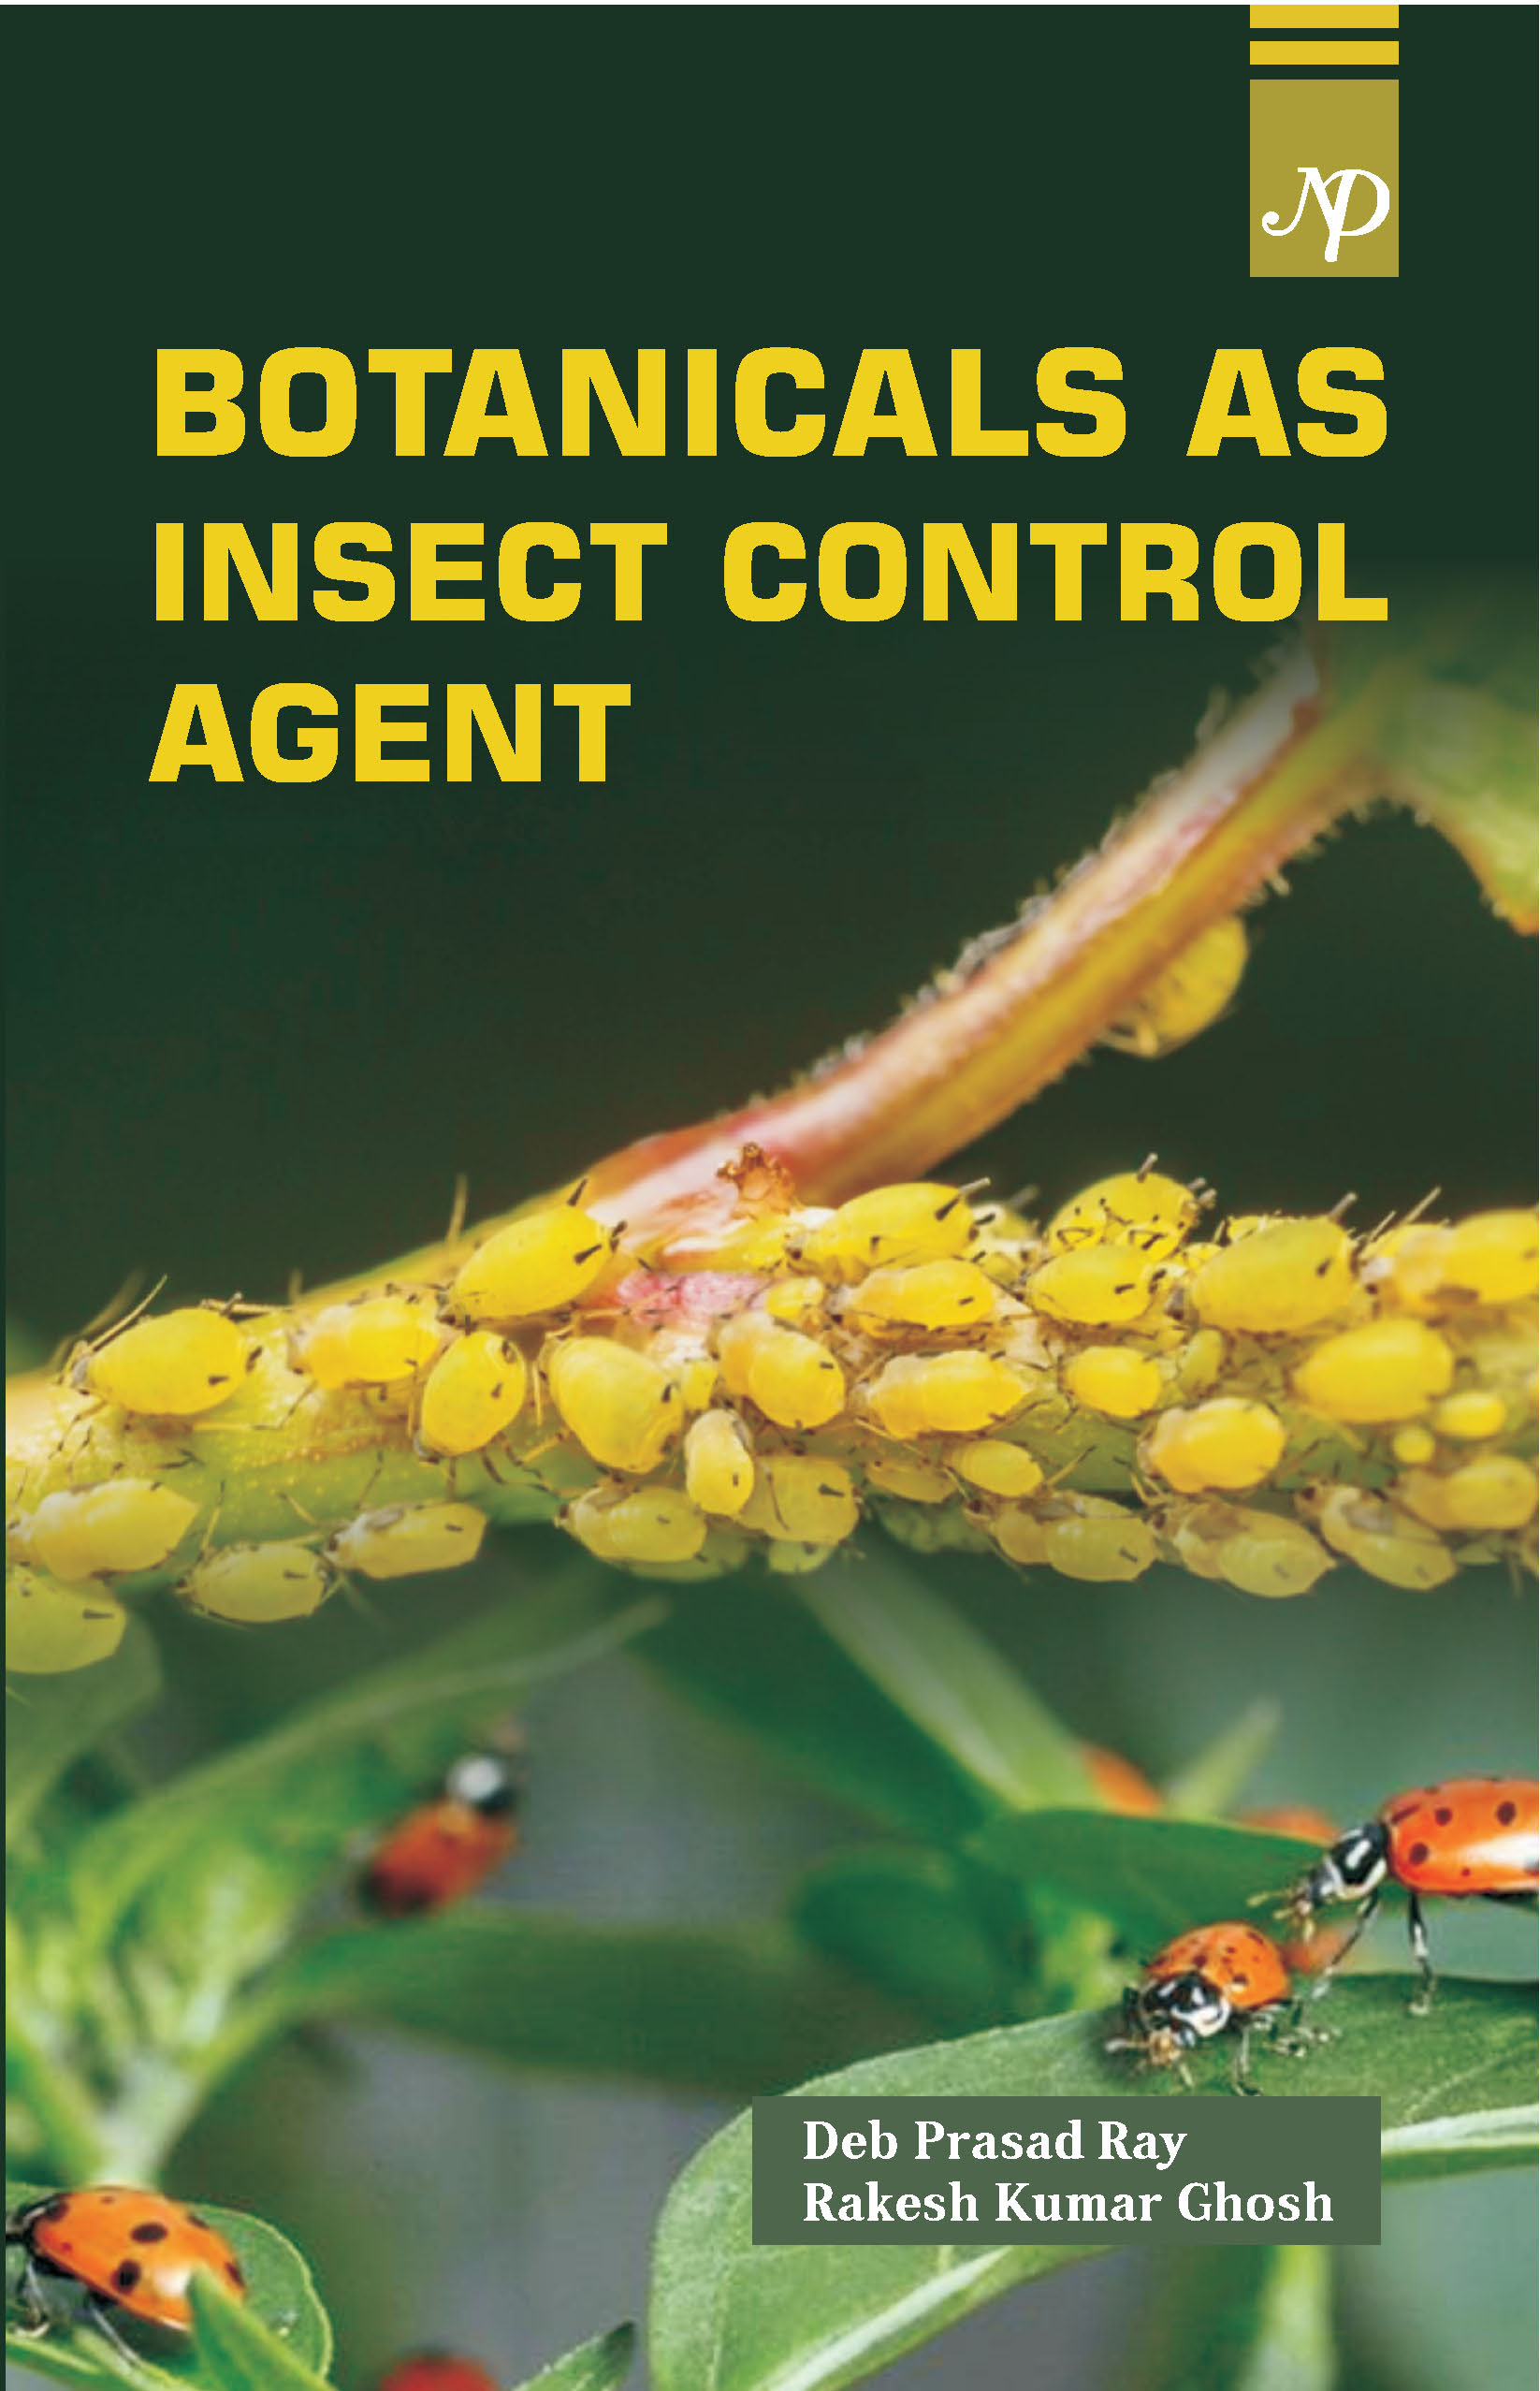 Botanicals as insect control agent.jpg